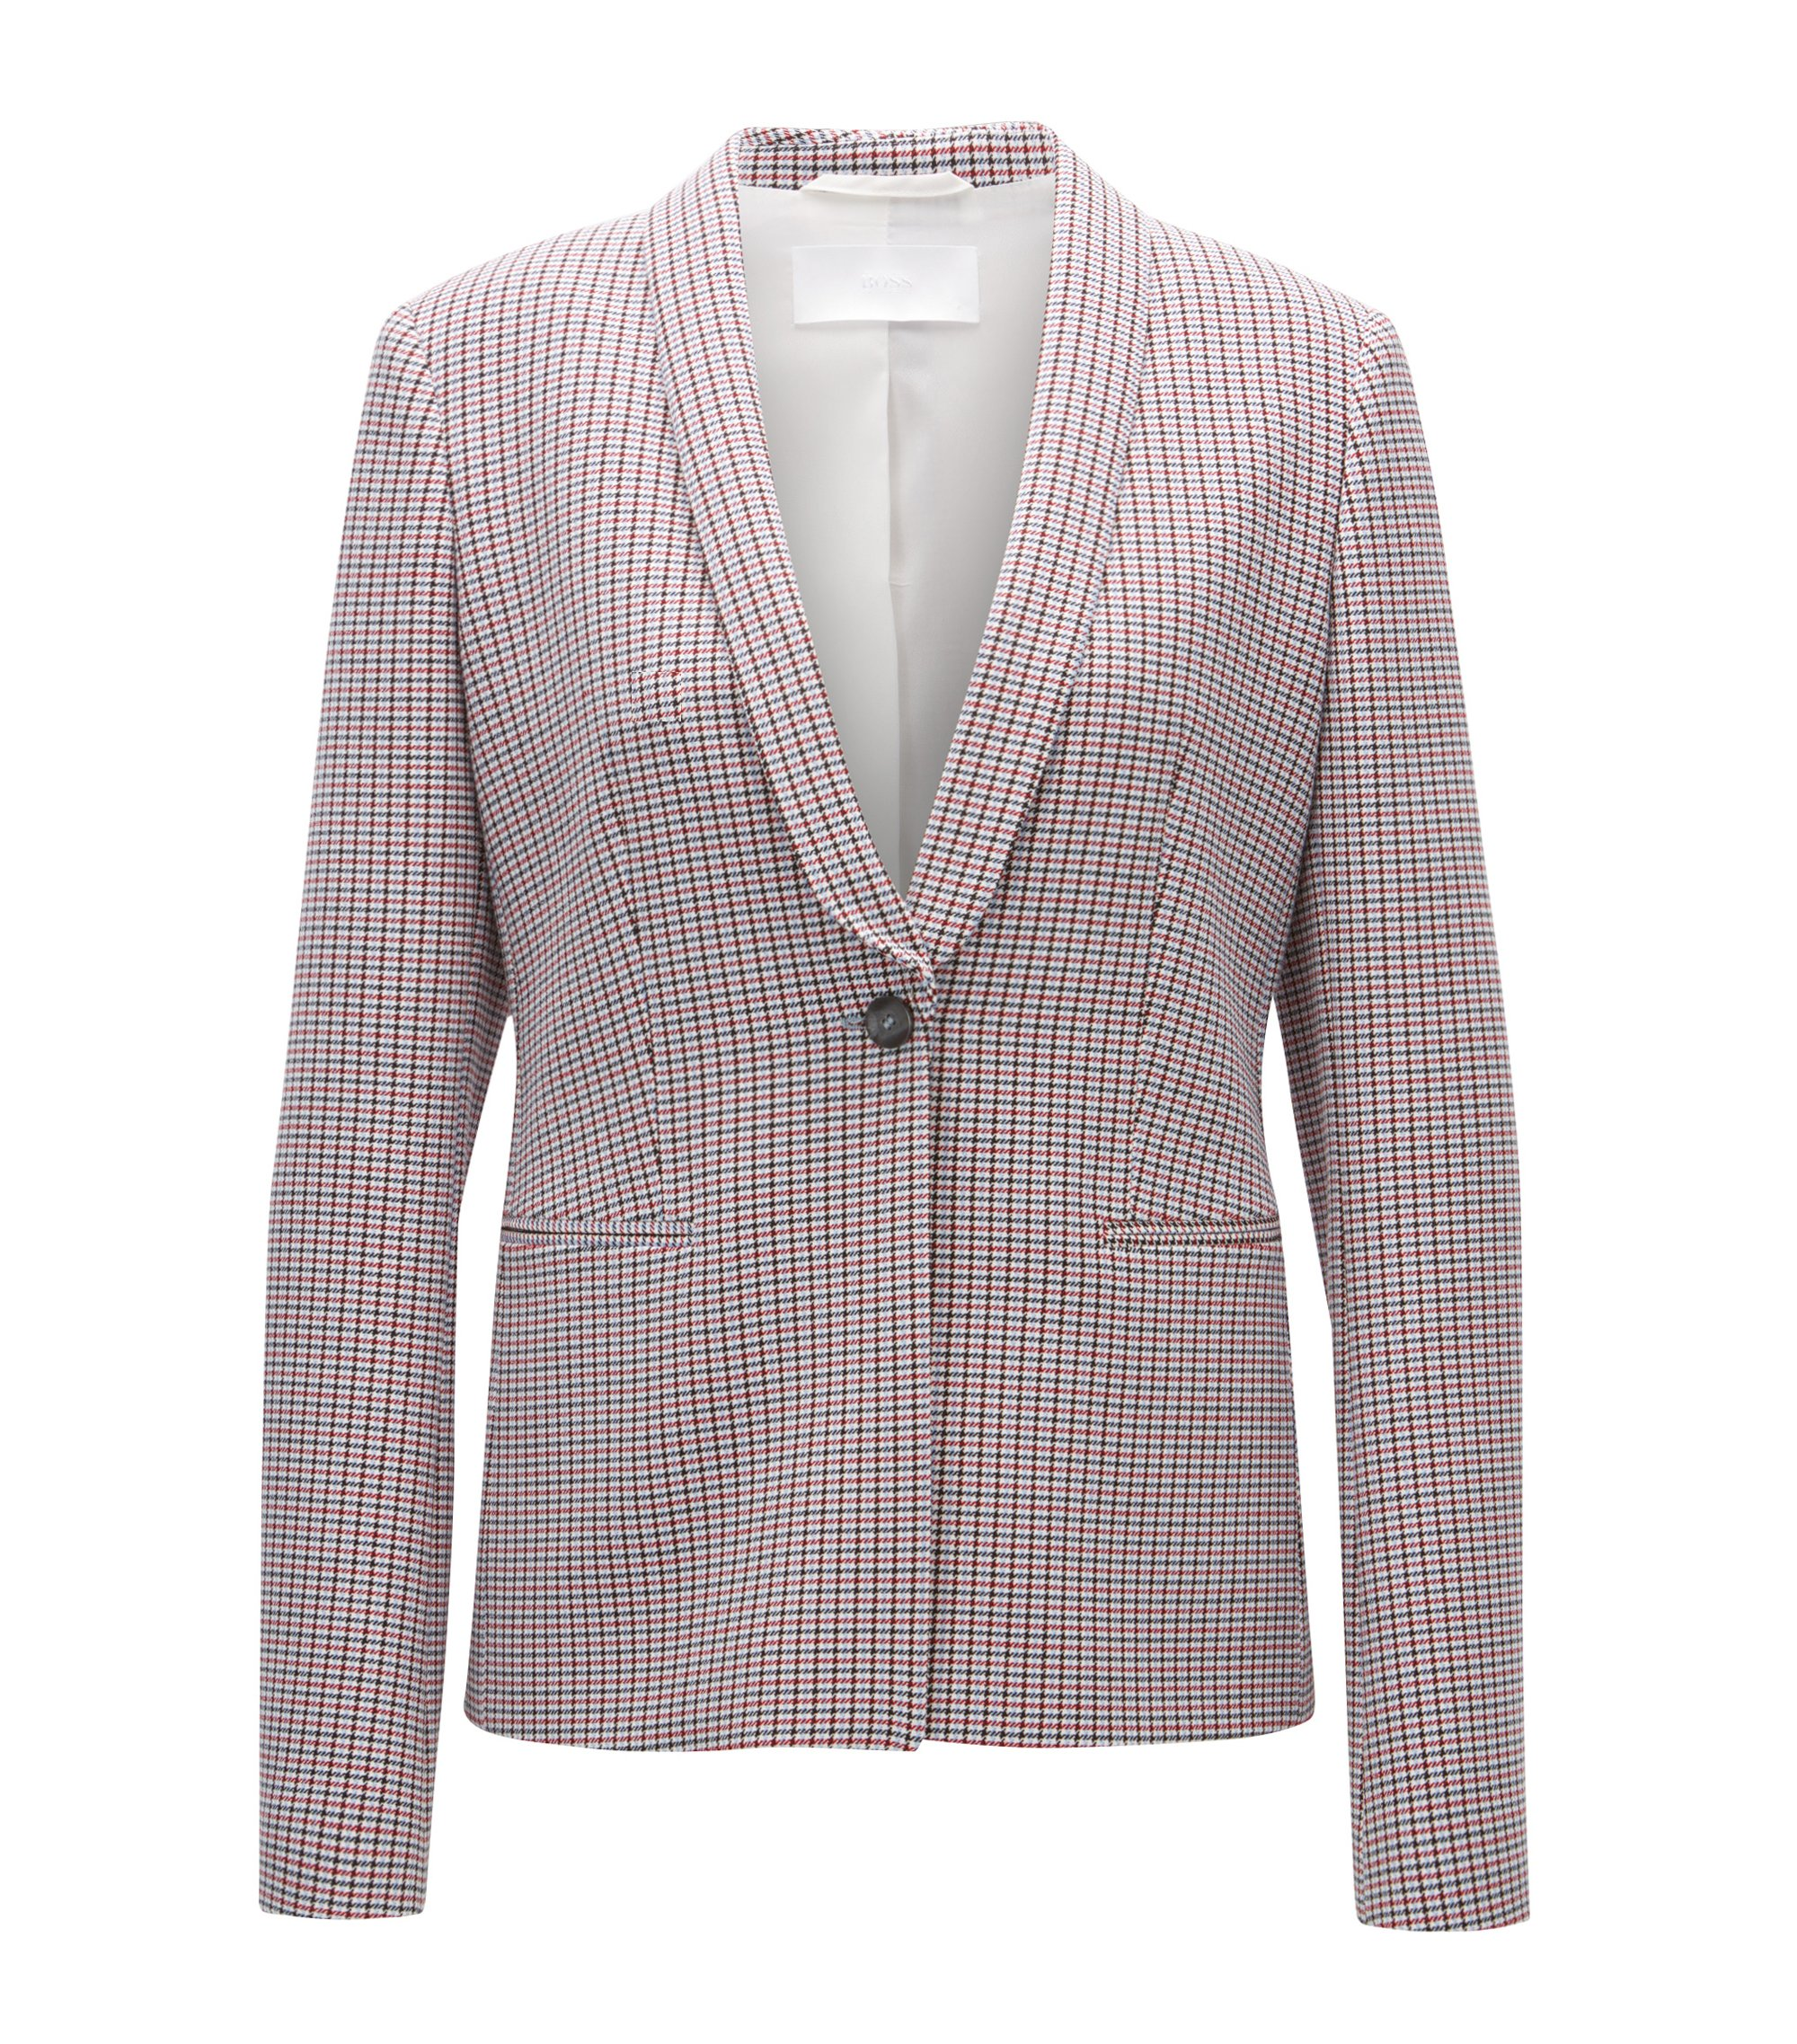 Veste Regular Fit en tissu double face, Fantaisie